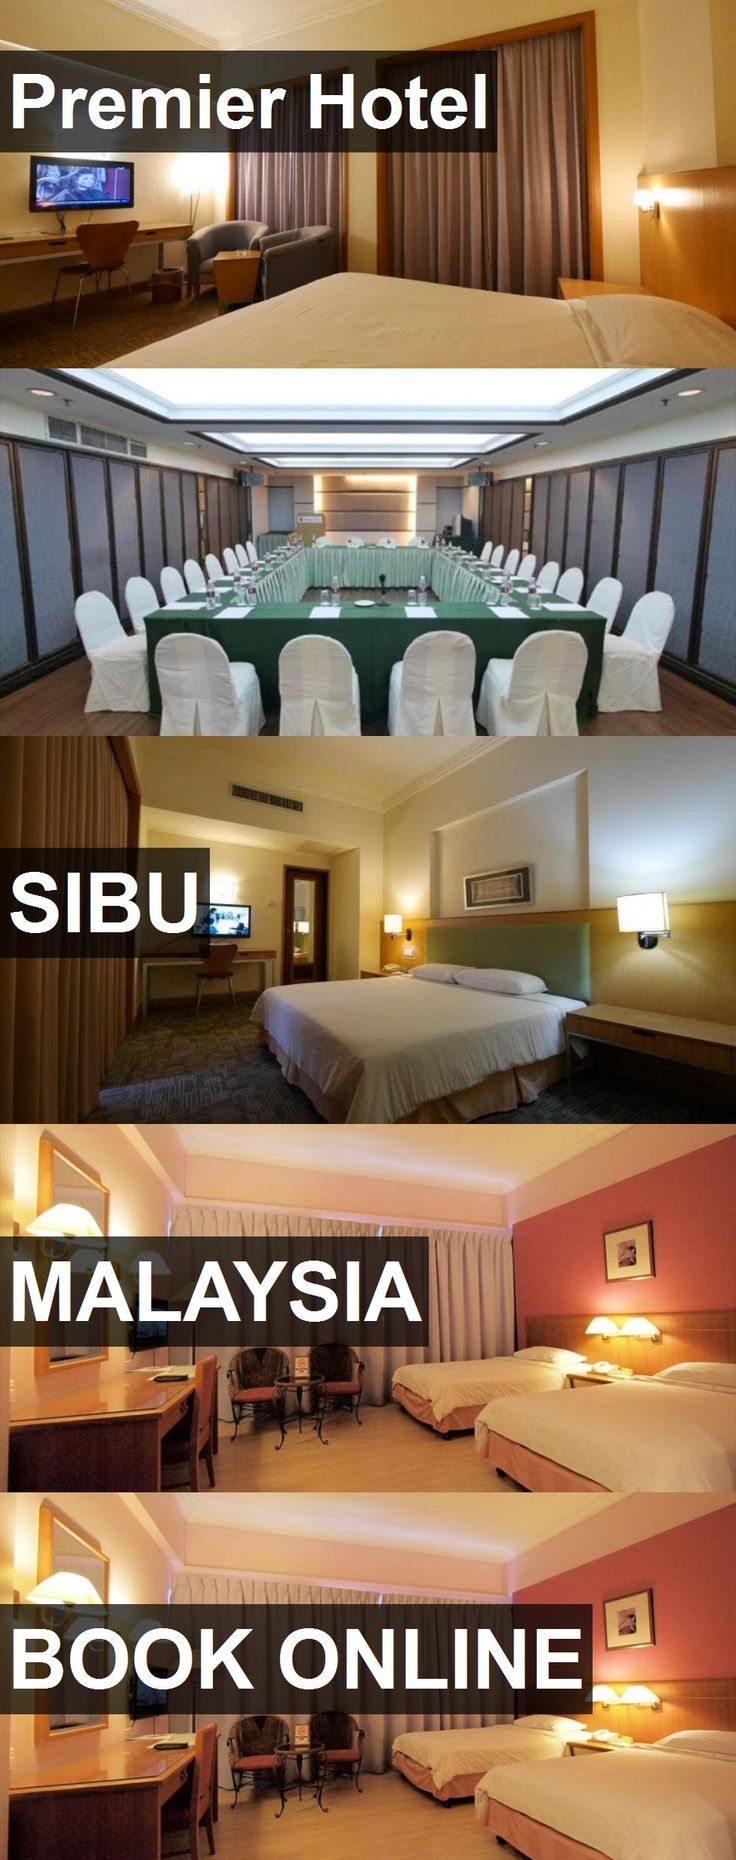 Premier Hotel in Sibu, Malaysia. For more information, photos, reviews and best prices please follow the link. #Malaysia #Sibu #travel #vacation #hotel